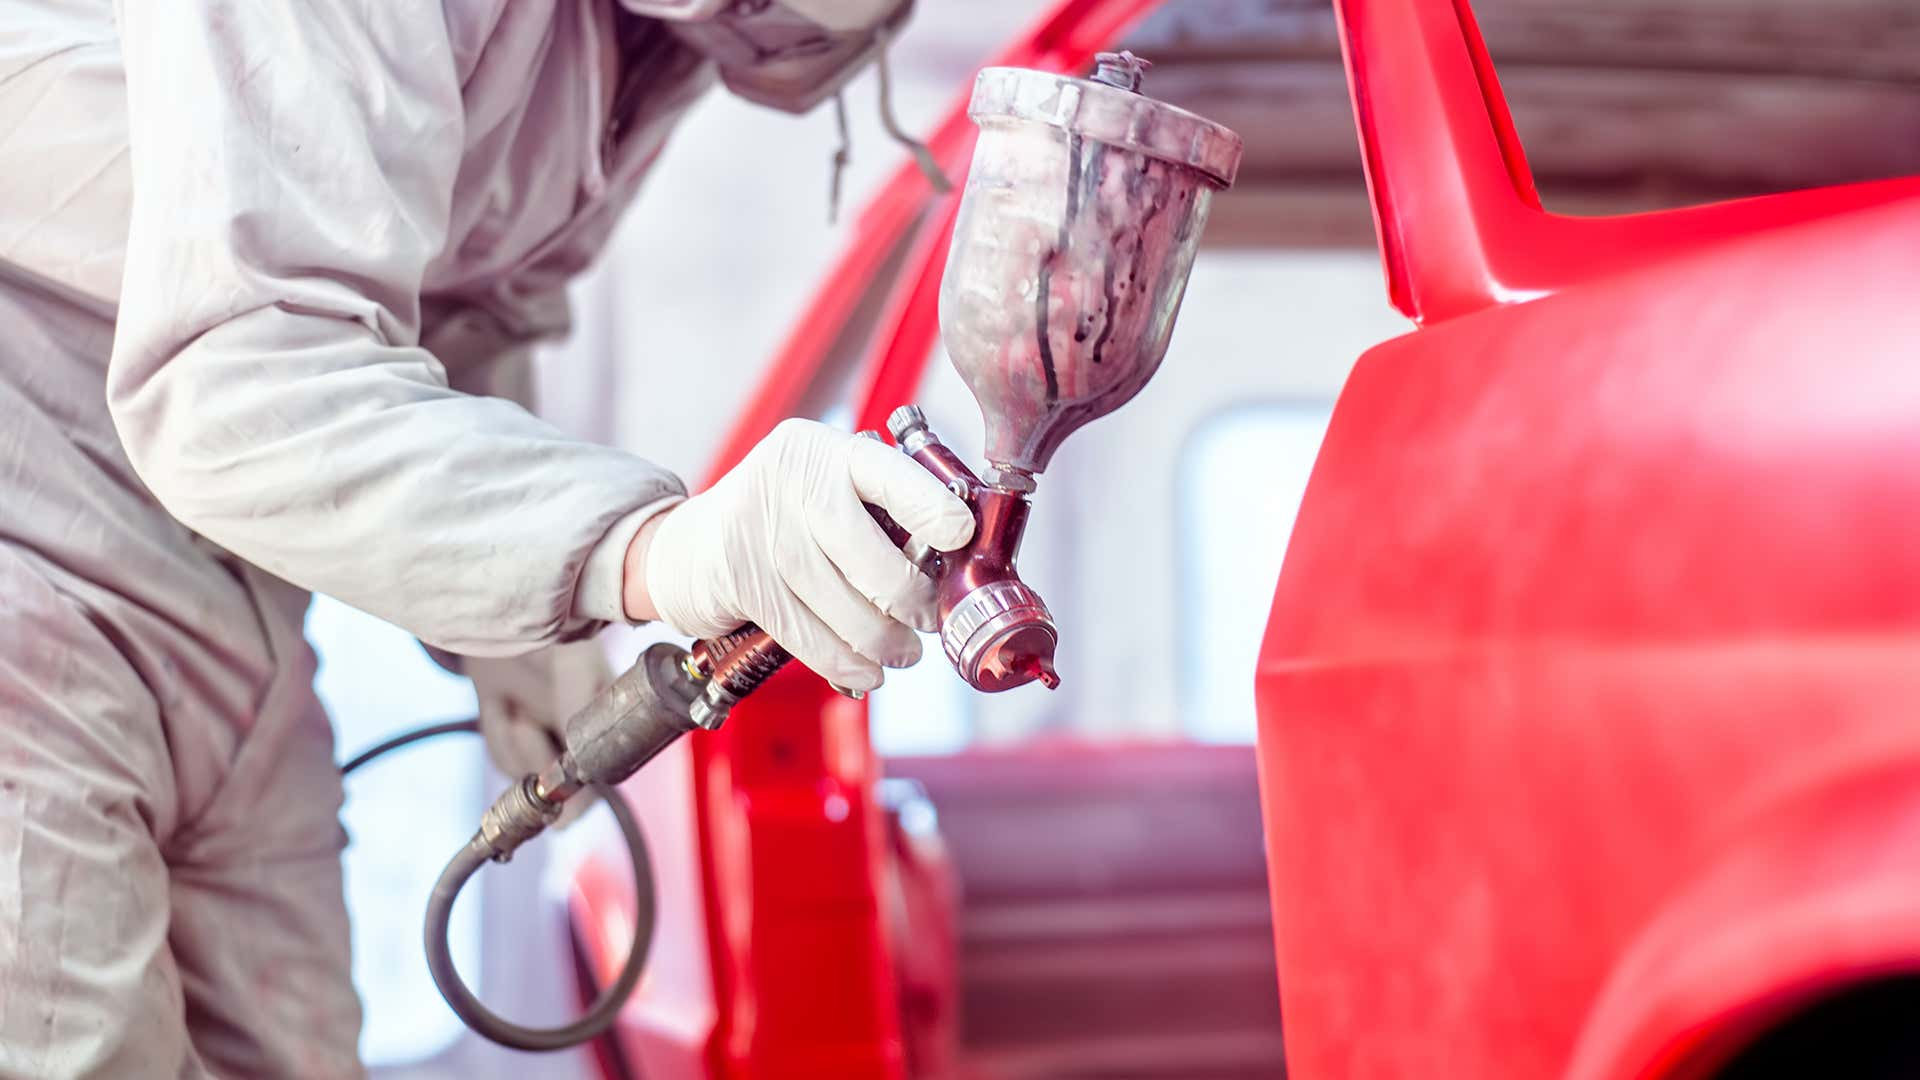 A person uses a pneumatic paint sprayer to paint a car.